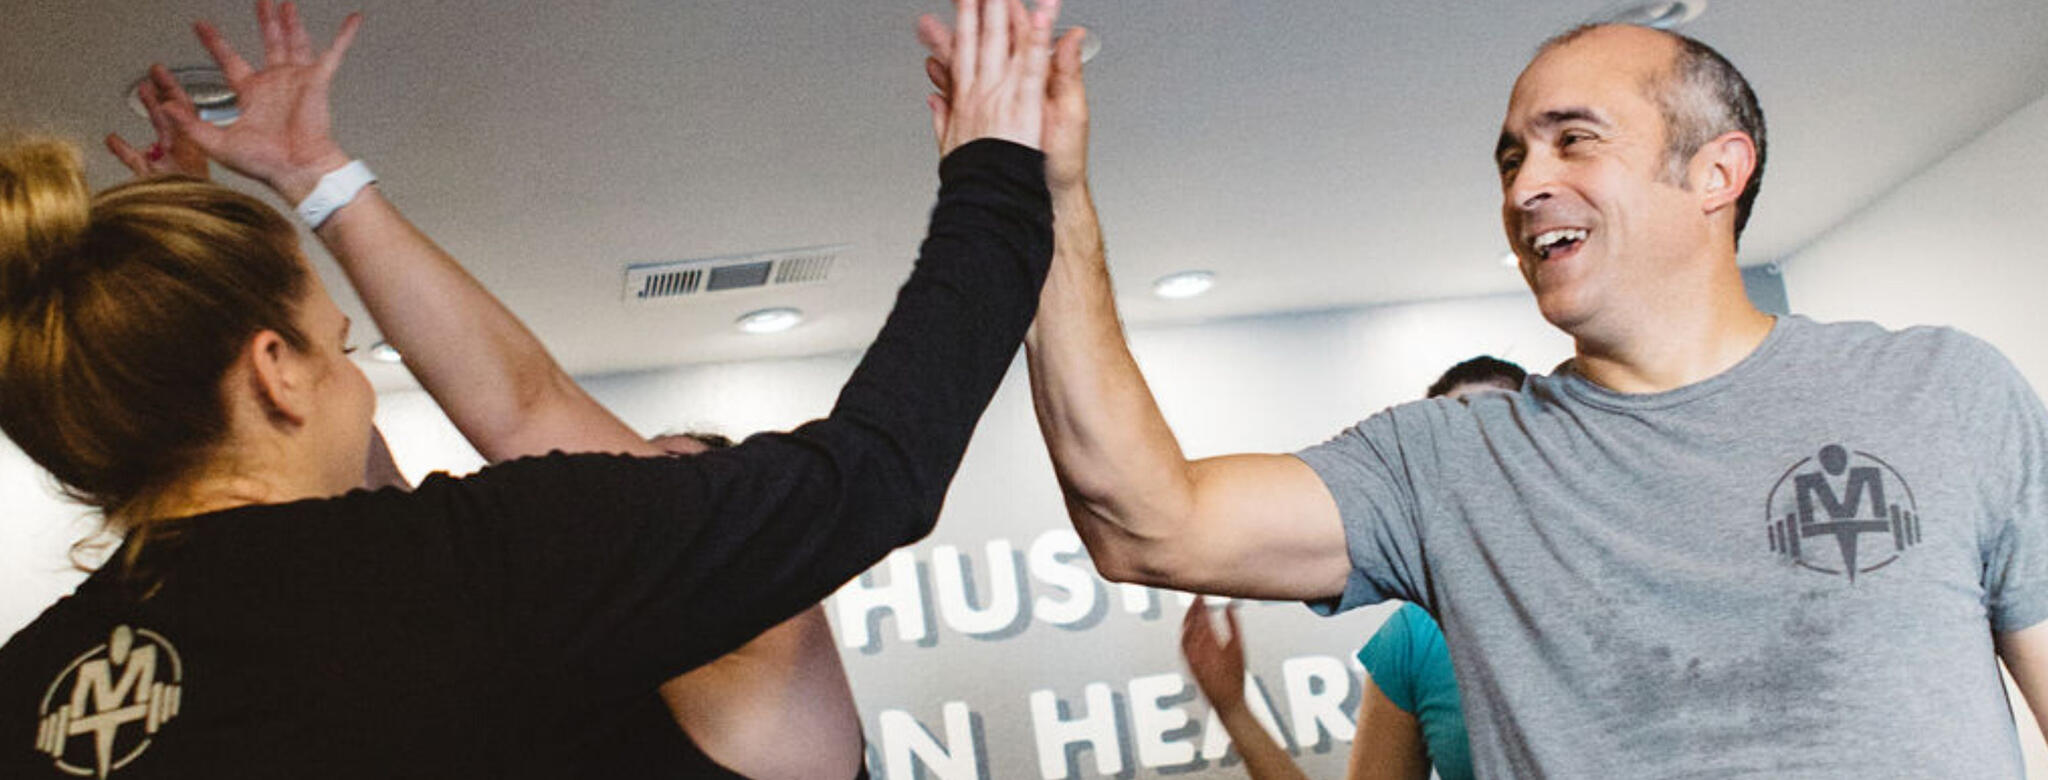 man and woman giving high five in gym